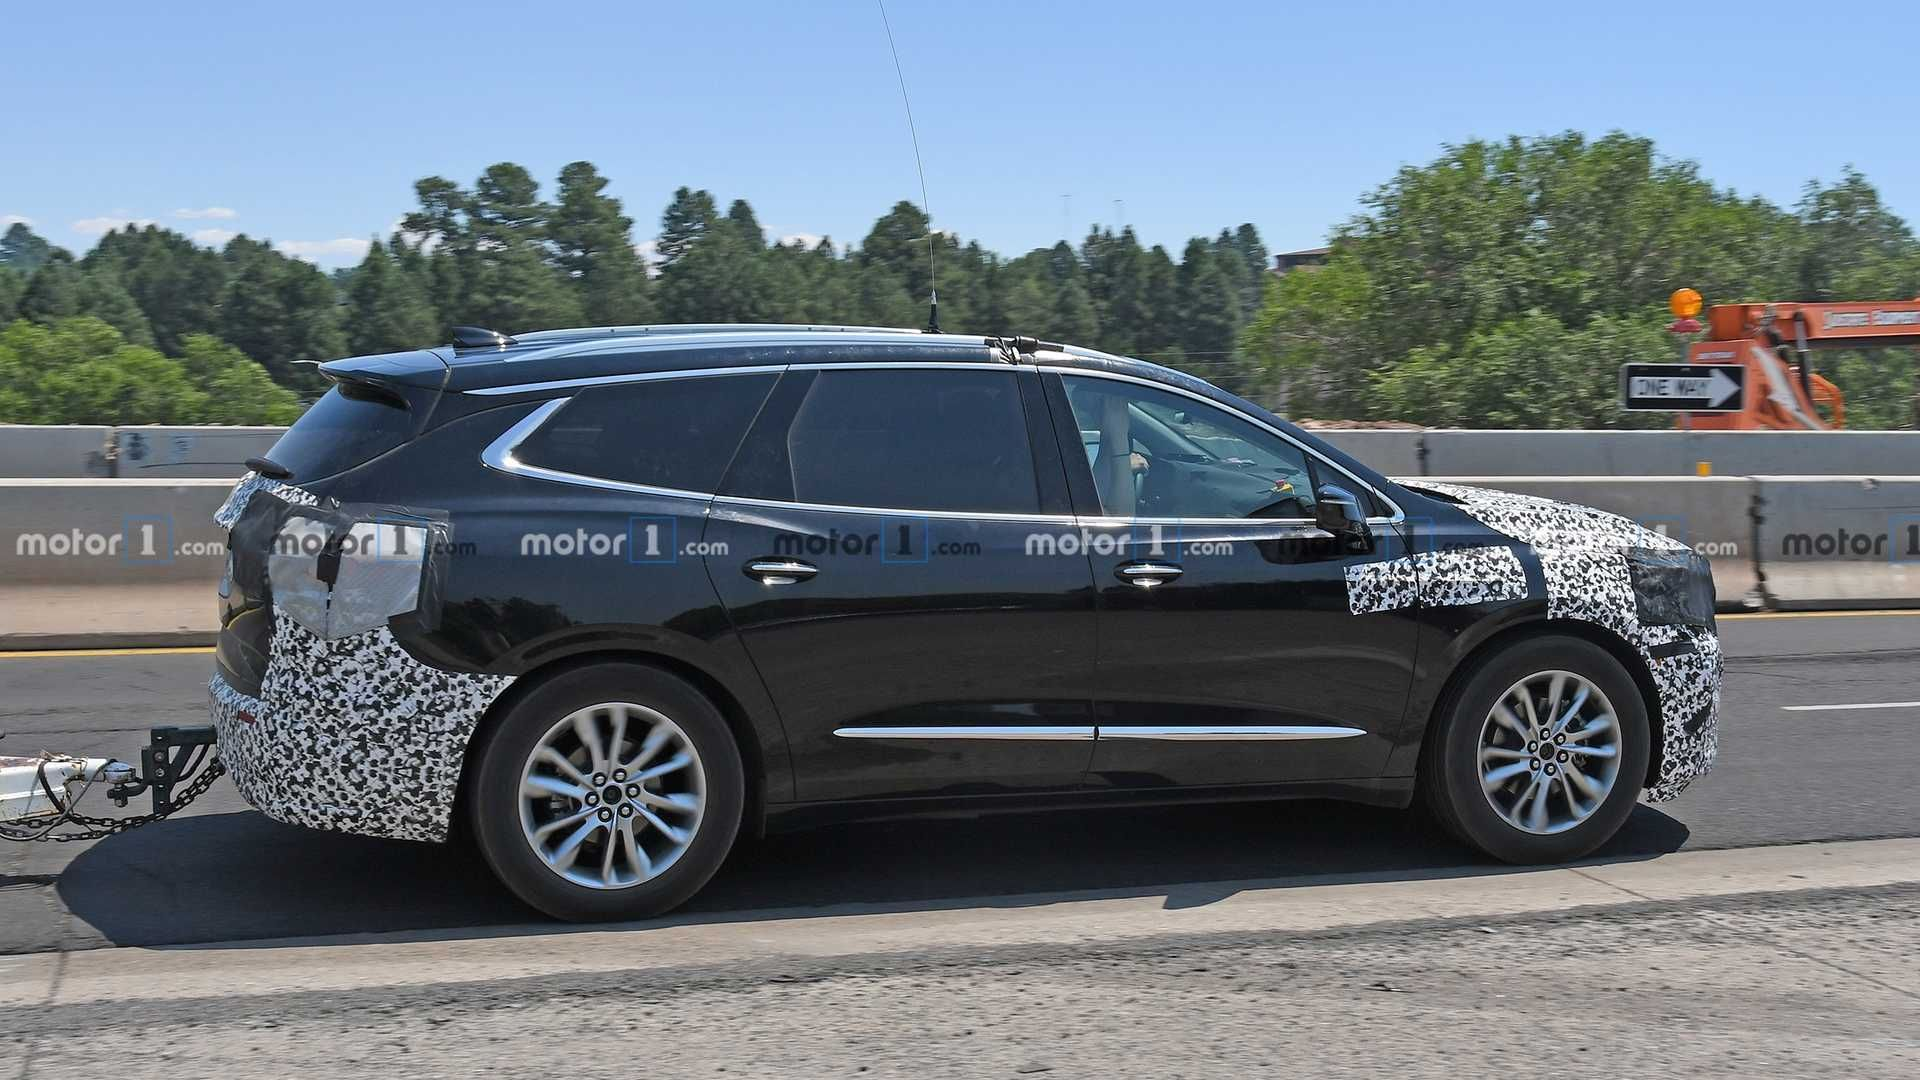 2021 Buick Enclave Owners Manual Buick Enclave Buick Models Buick